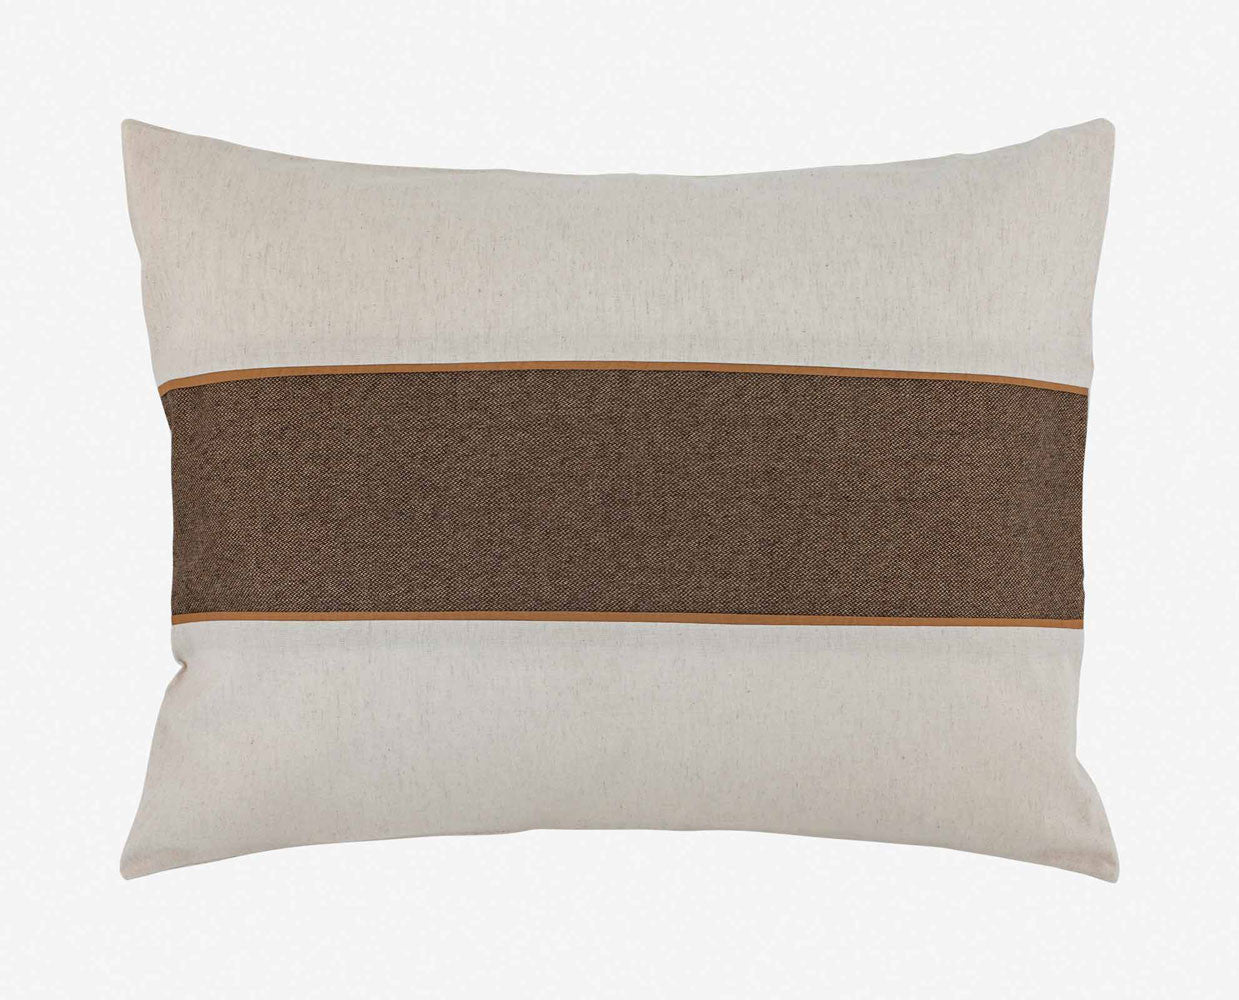 Plush modern tweed accent pillow